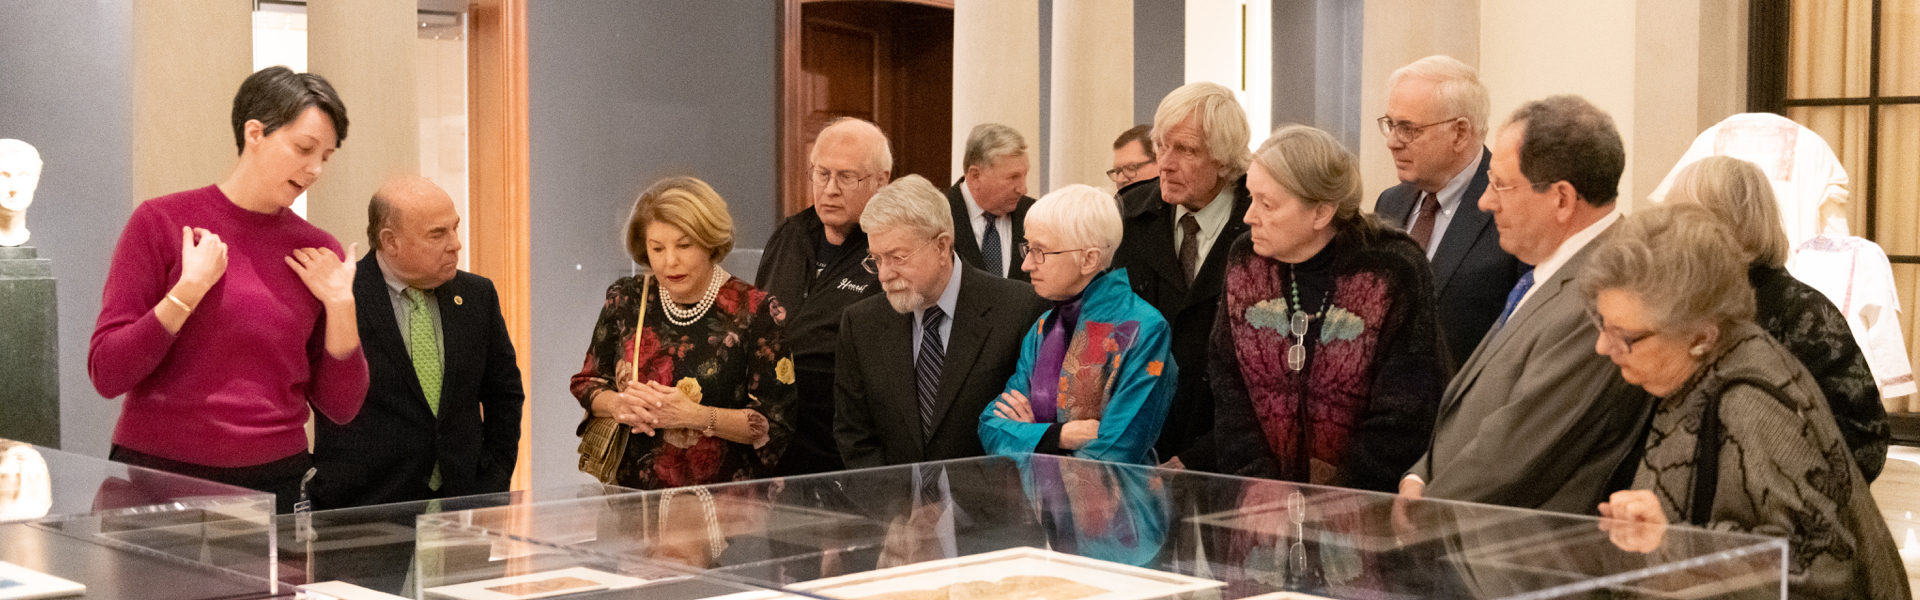 Large group of adults looking at materials in glass case